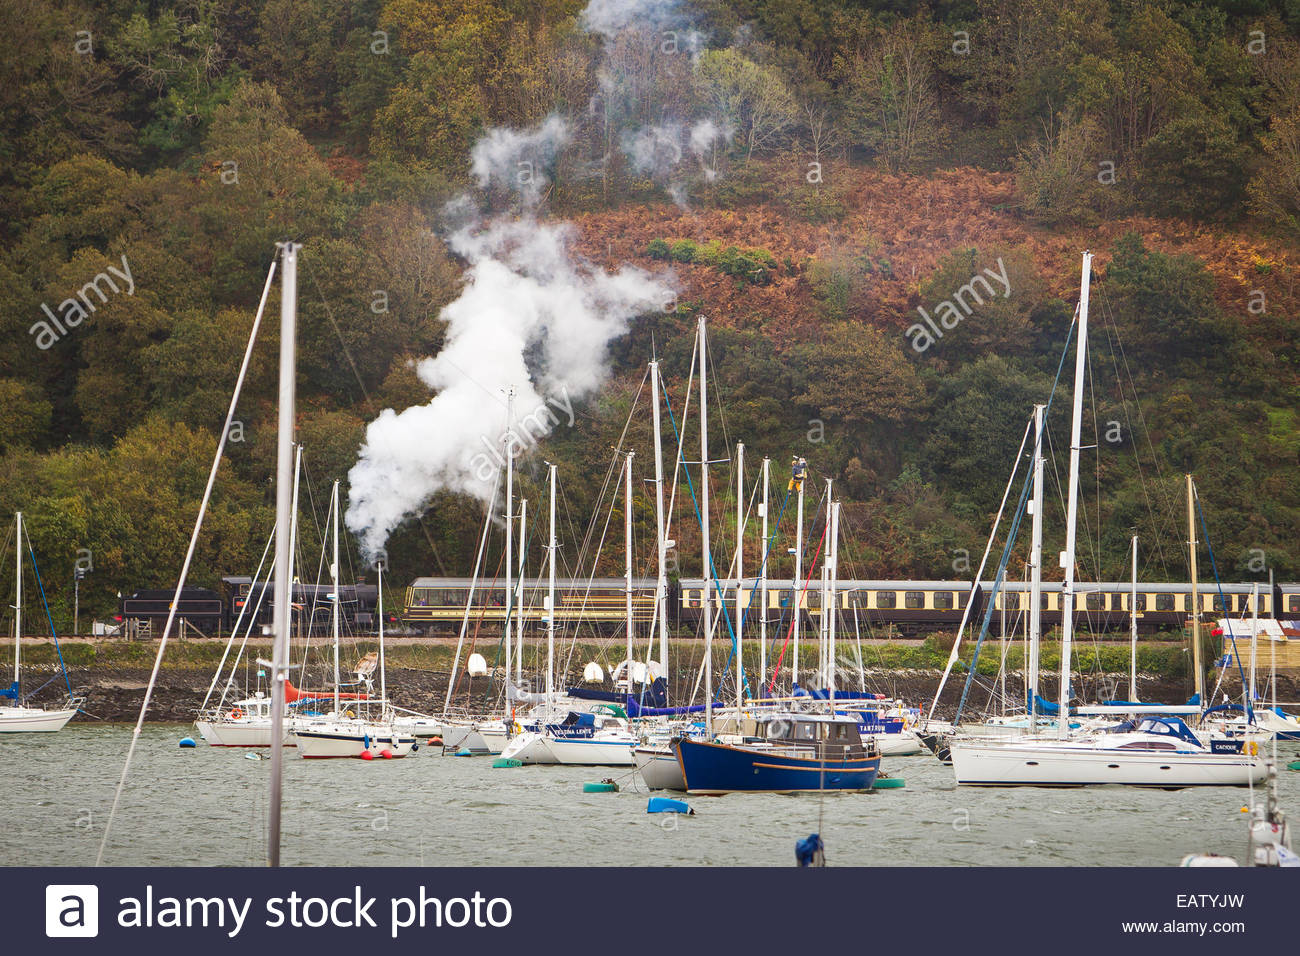 A train spewing steam travels along the coast of Dartmouth, England. - Stock Image